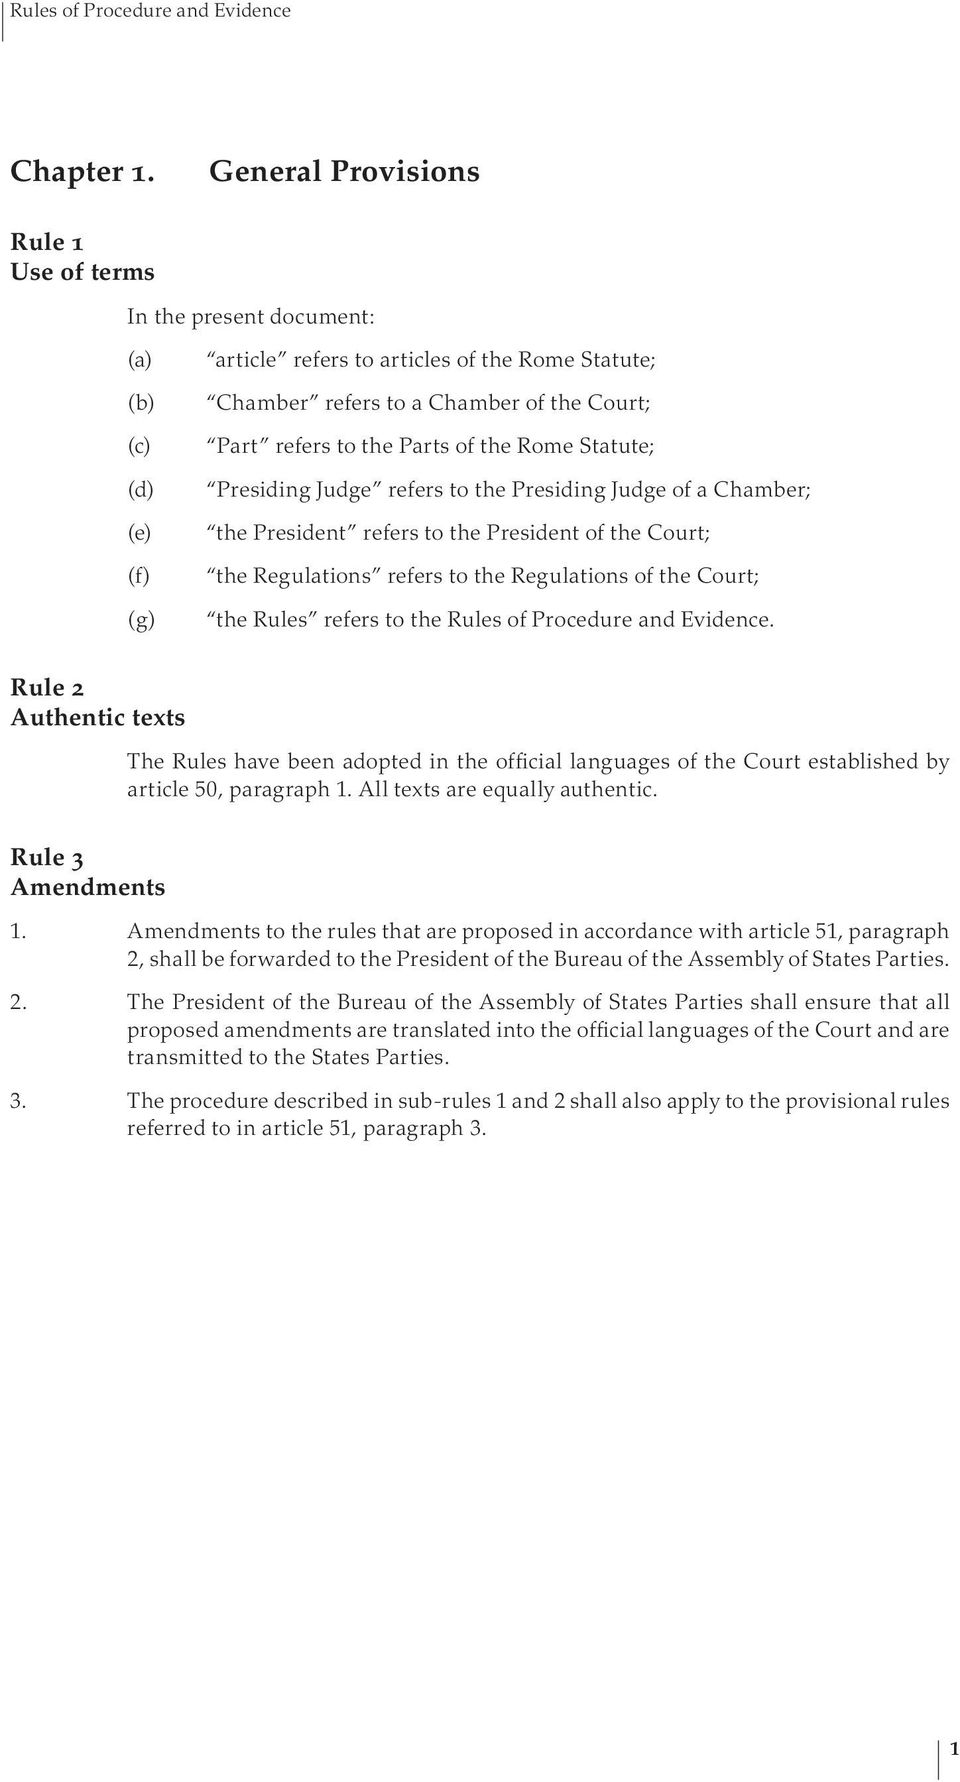 of the Rome Statute; Presiding Judge refers to the Presiding Judge of a Chamber; the President refers to the President of the Court; the Regulations refers to the Regulations of the Court; the Rules